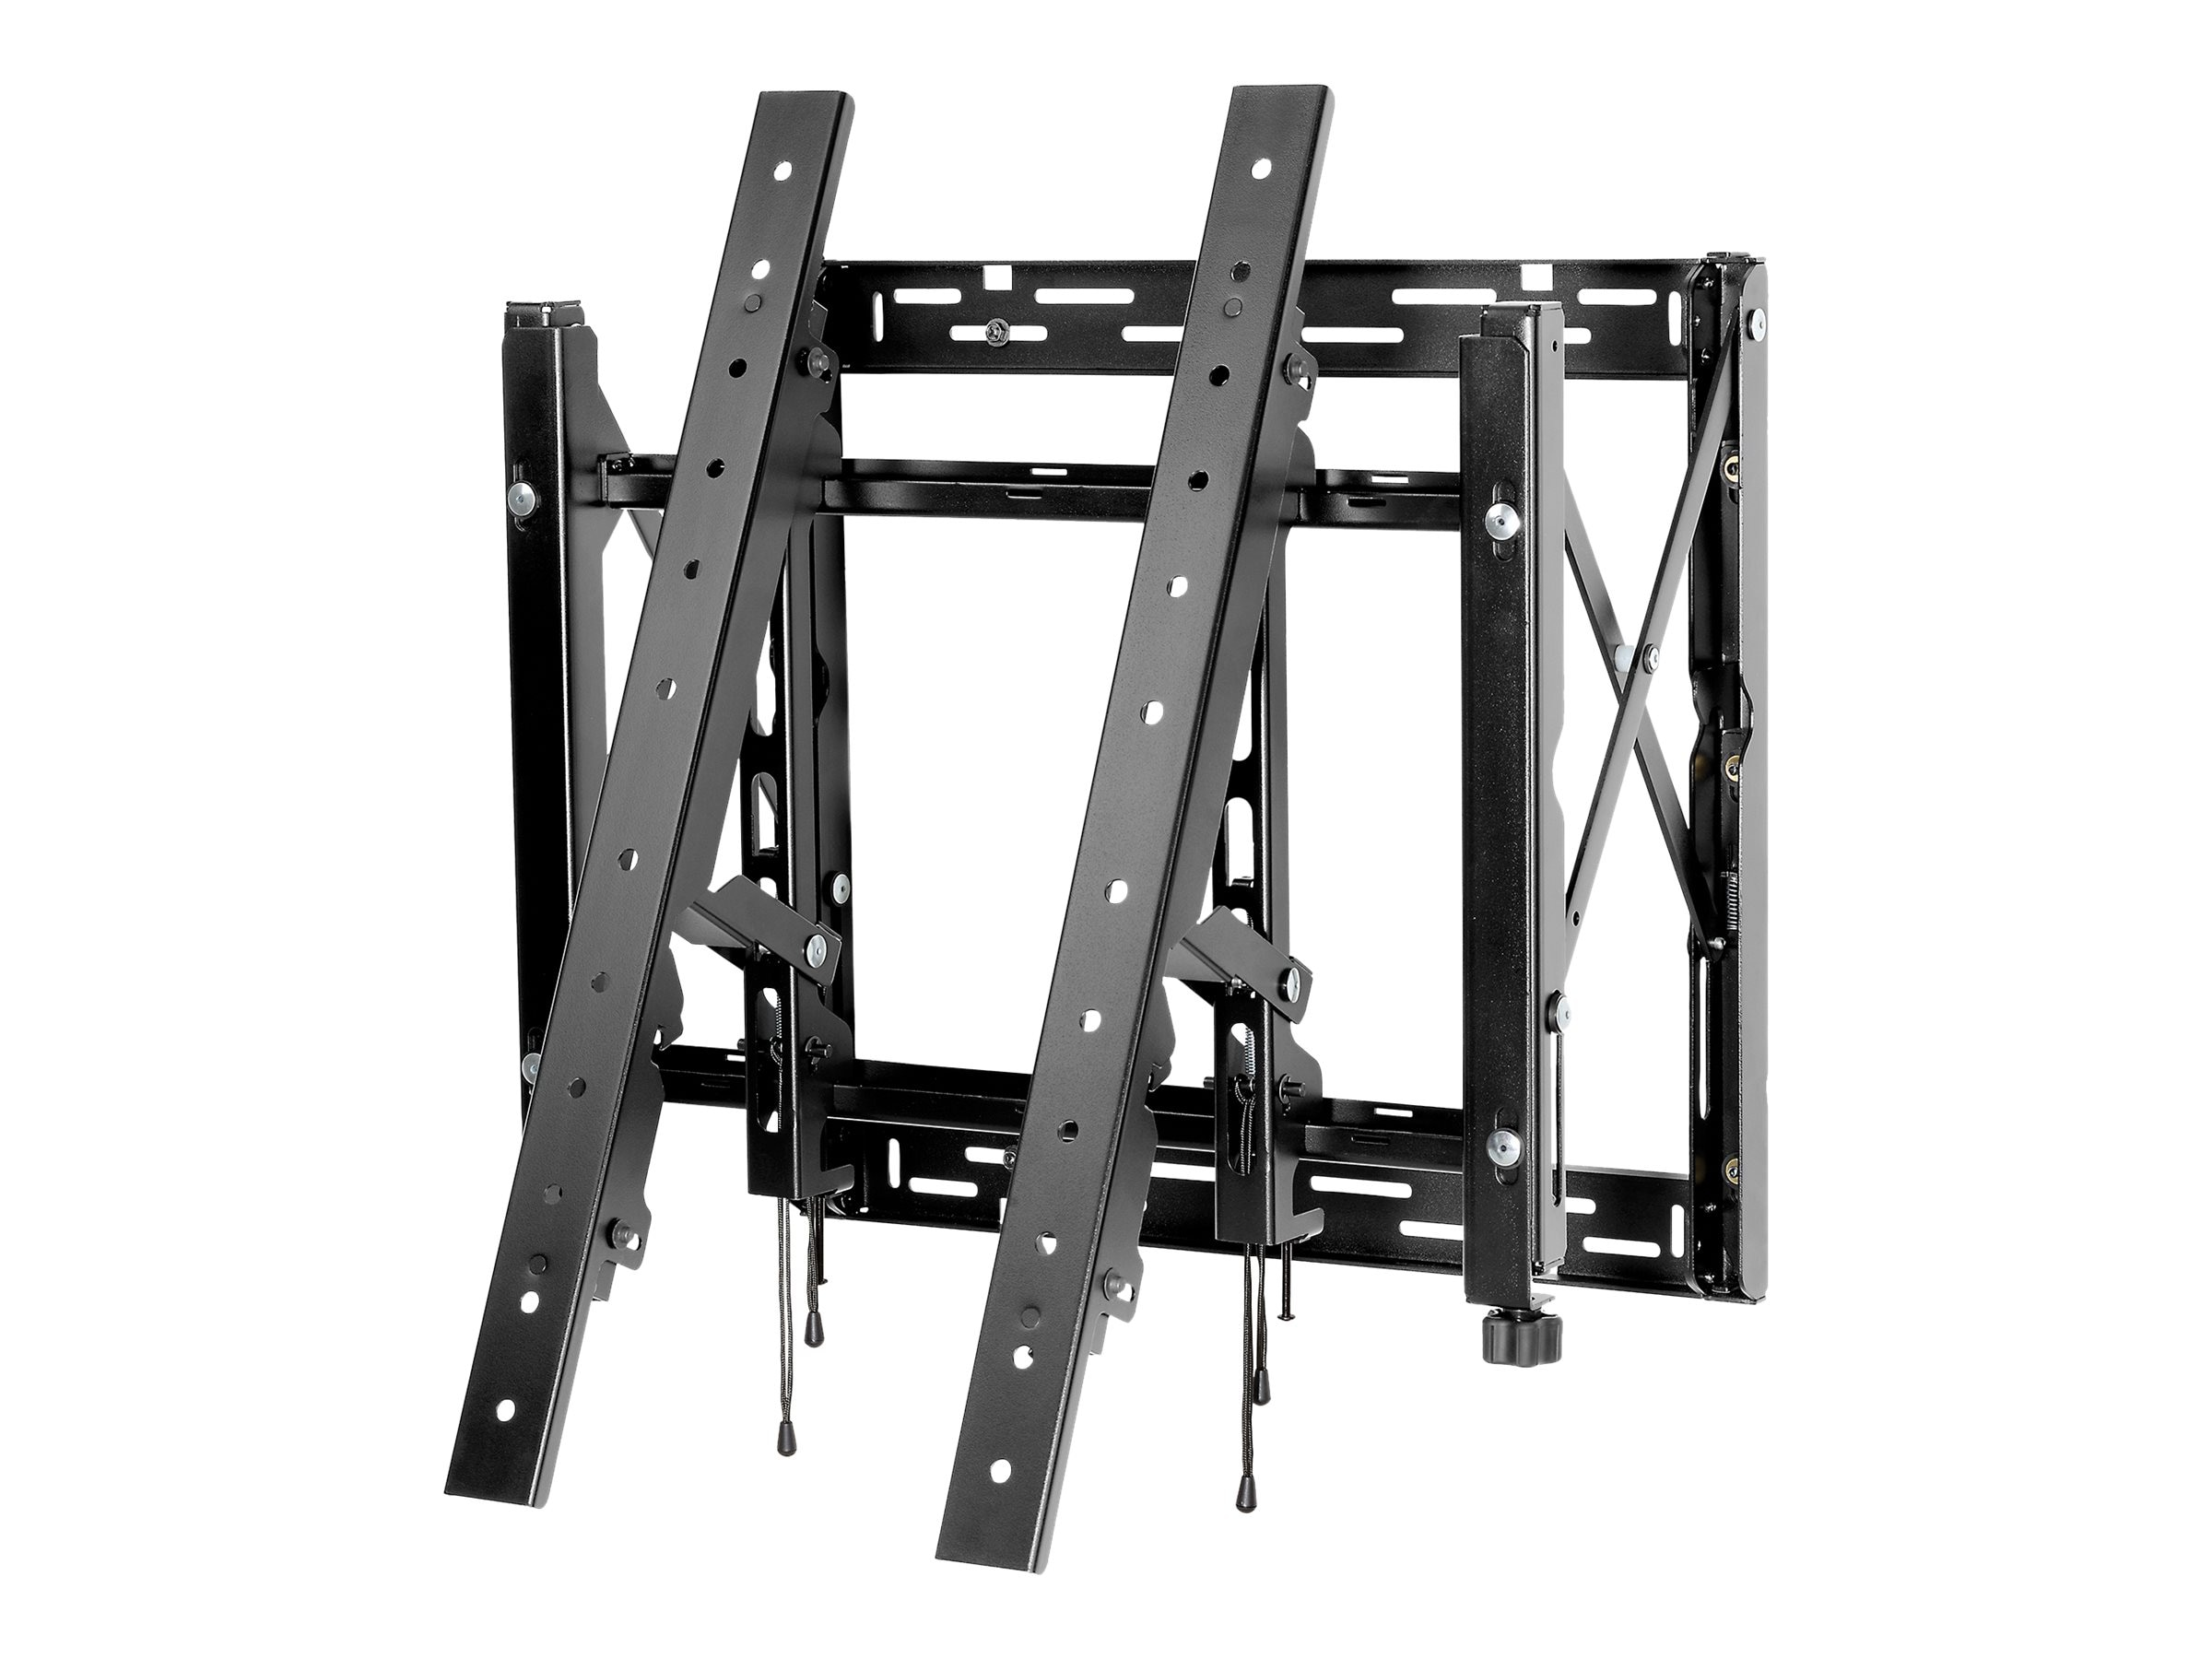 Peerless Portrait SmartMount Full-Service Video Wall Mount for 42-65 Display, DS-VW765-POR